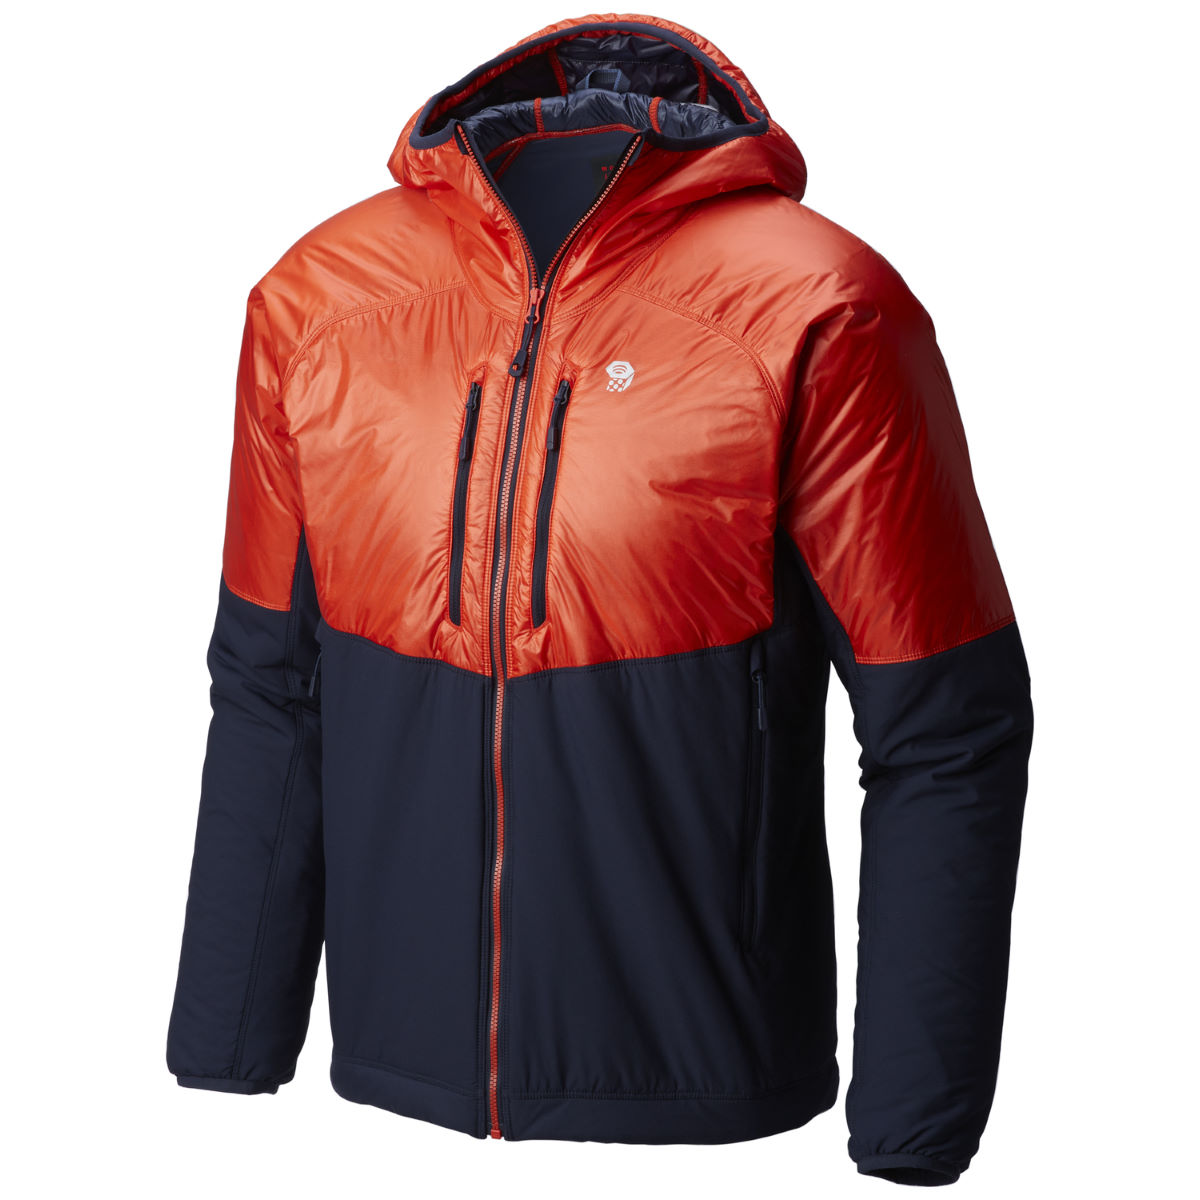 Mountain Hardwear Mountain Hardwear Kor Strata™ Alpine Hoody   Jackets